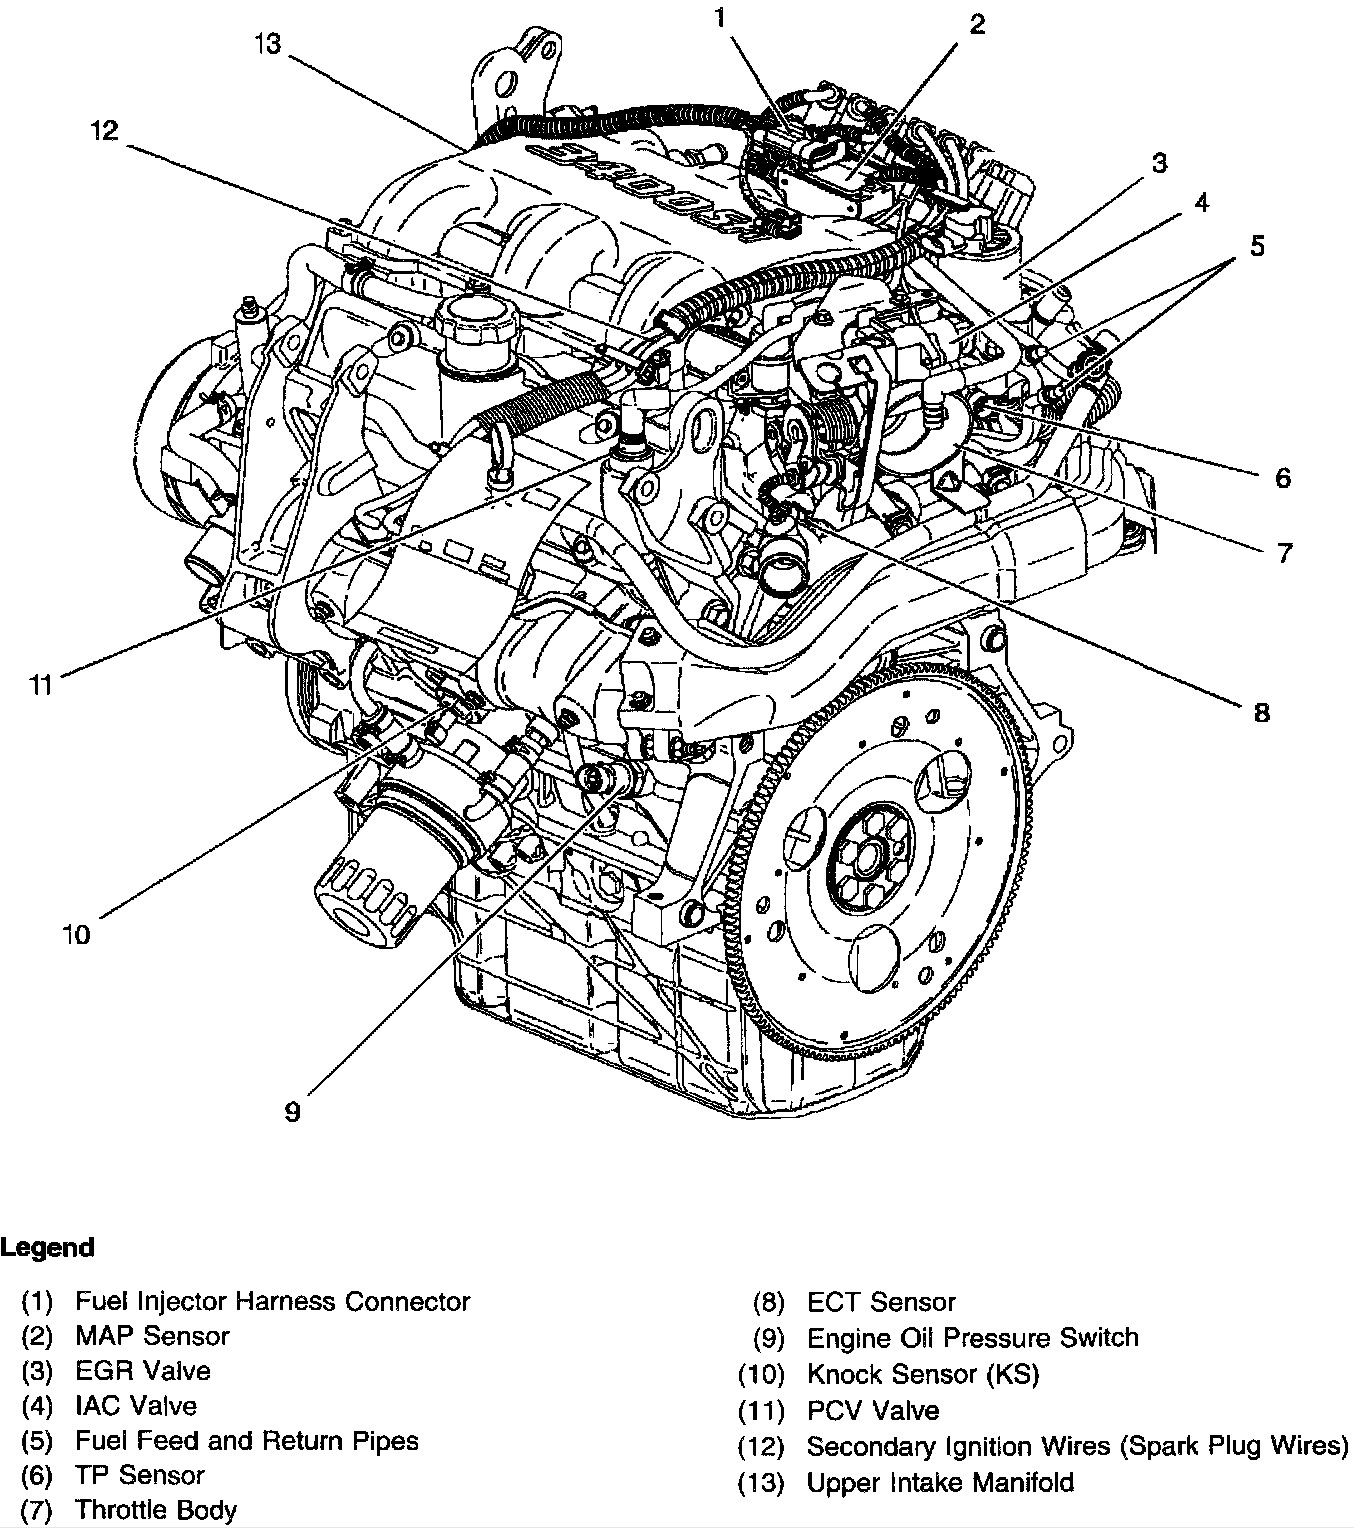 Pontiac 3800 Engine Diagram Buick Riviera G Hoses & Pipes